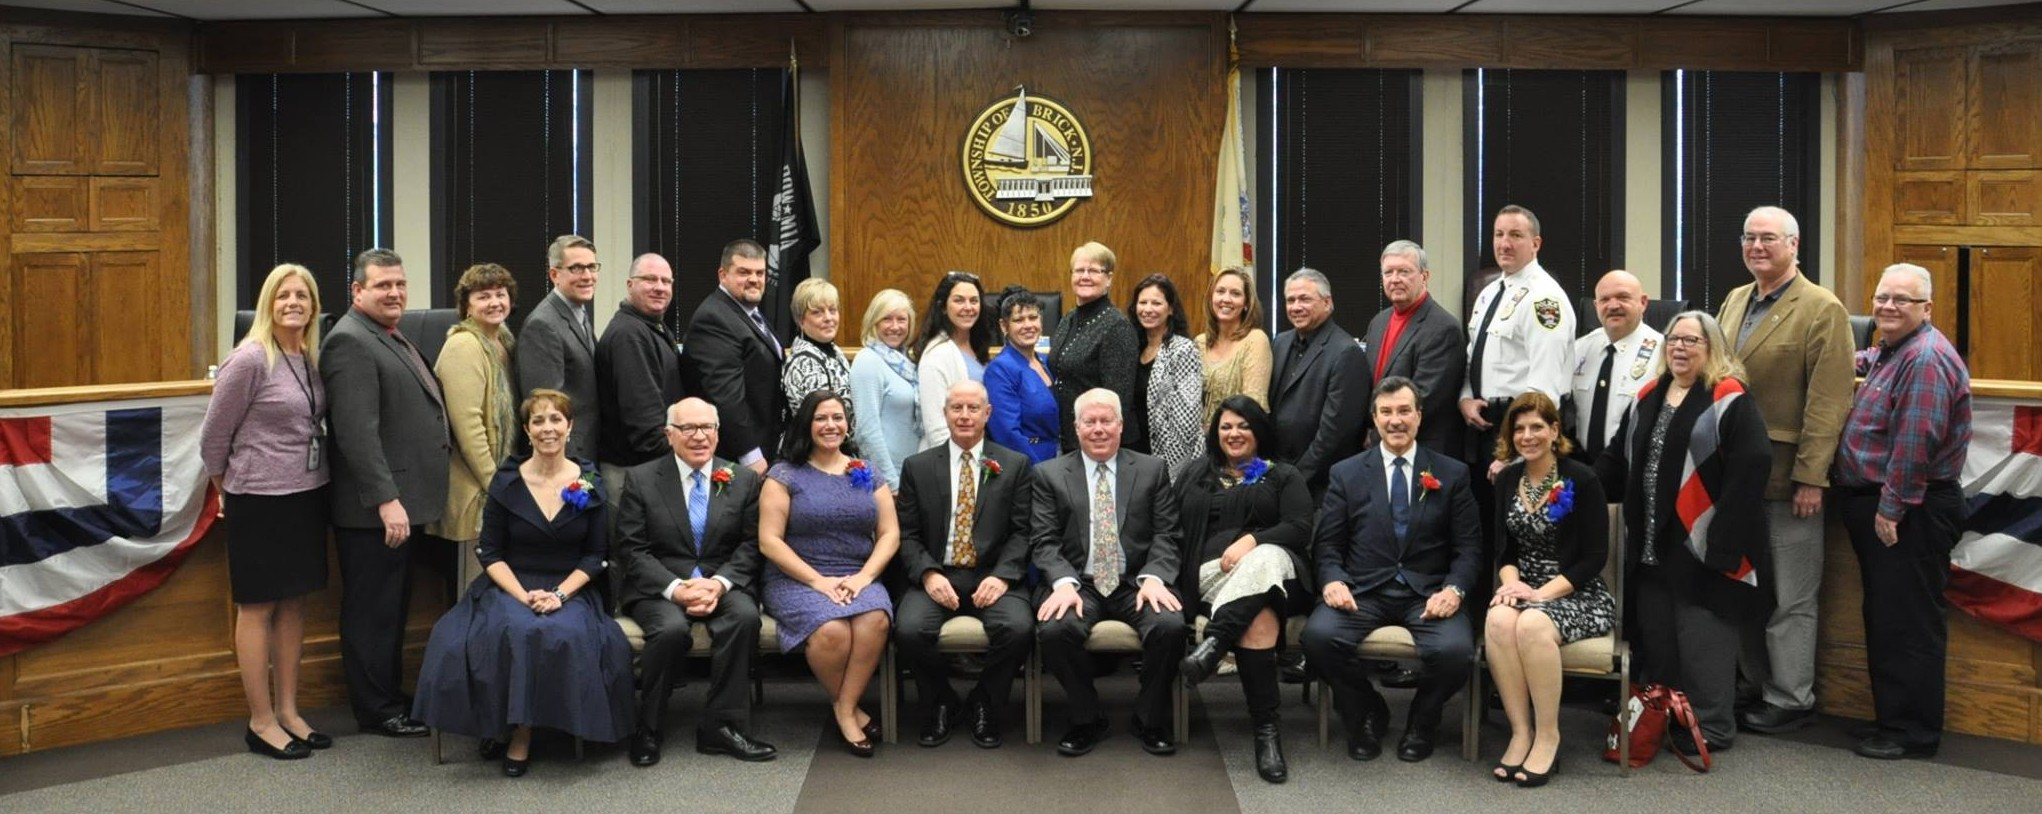 The 2016 Brick Township council and officials. (Photo: Brick Twp.)